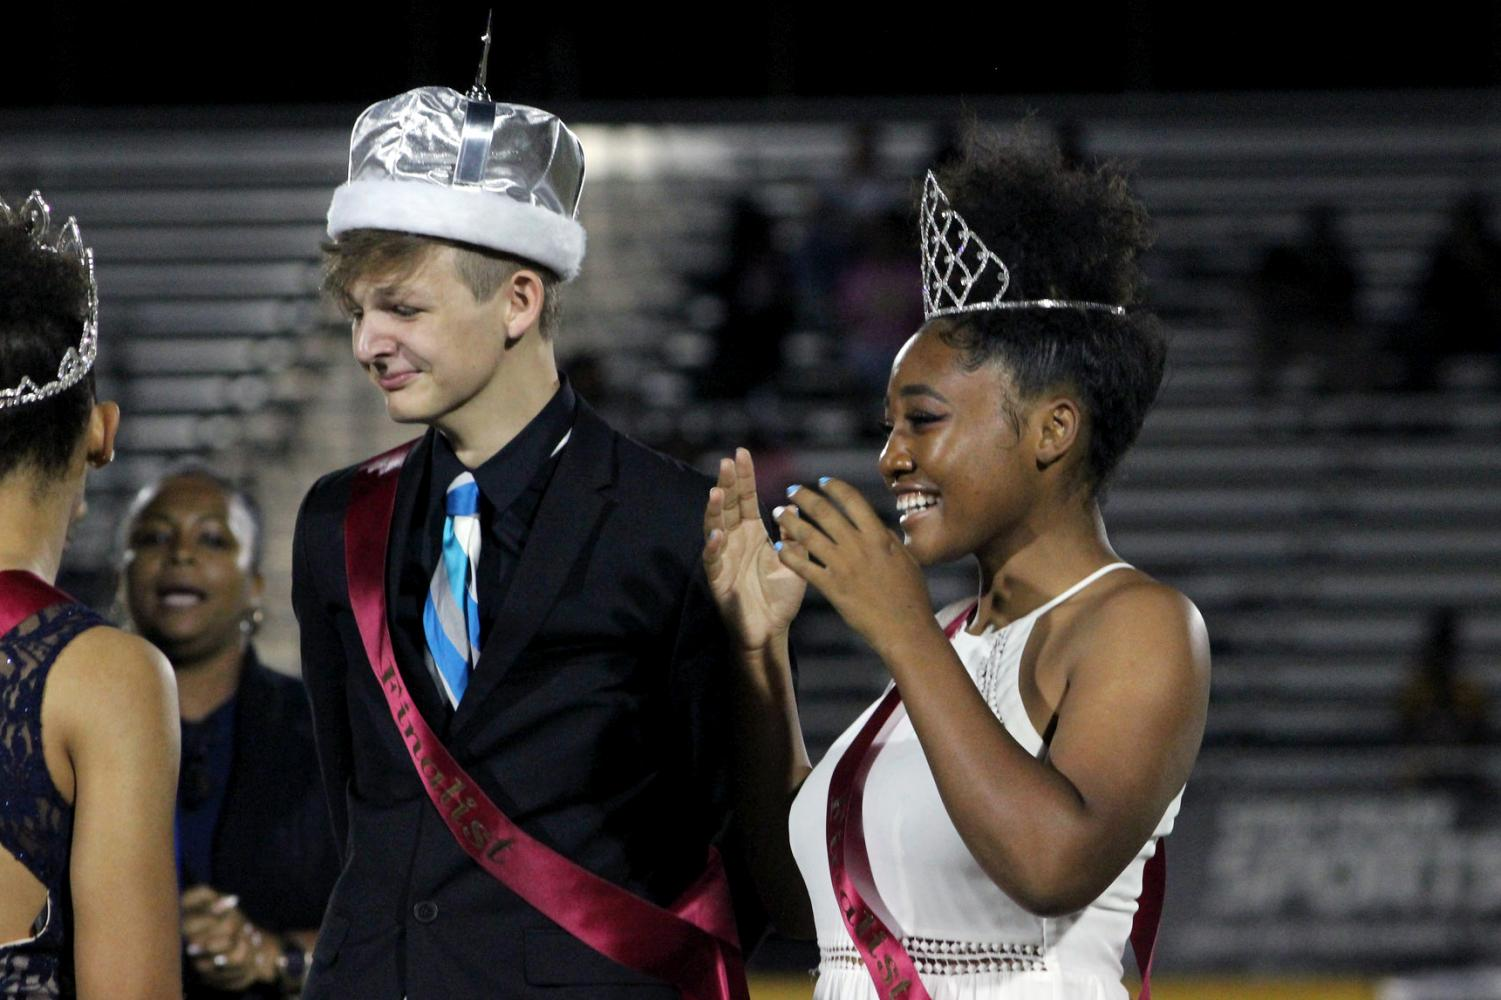 The 2017 Homecoming King and Queen were crowned at the football game against Middleton.